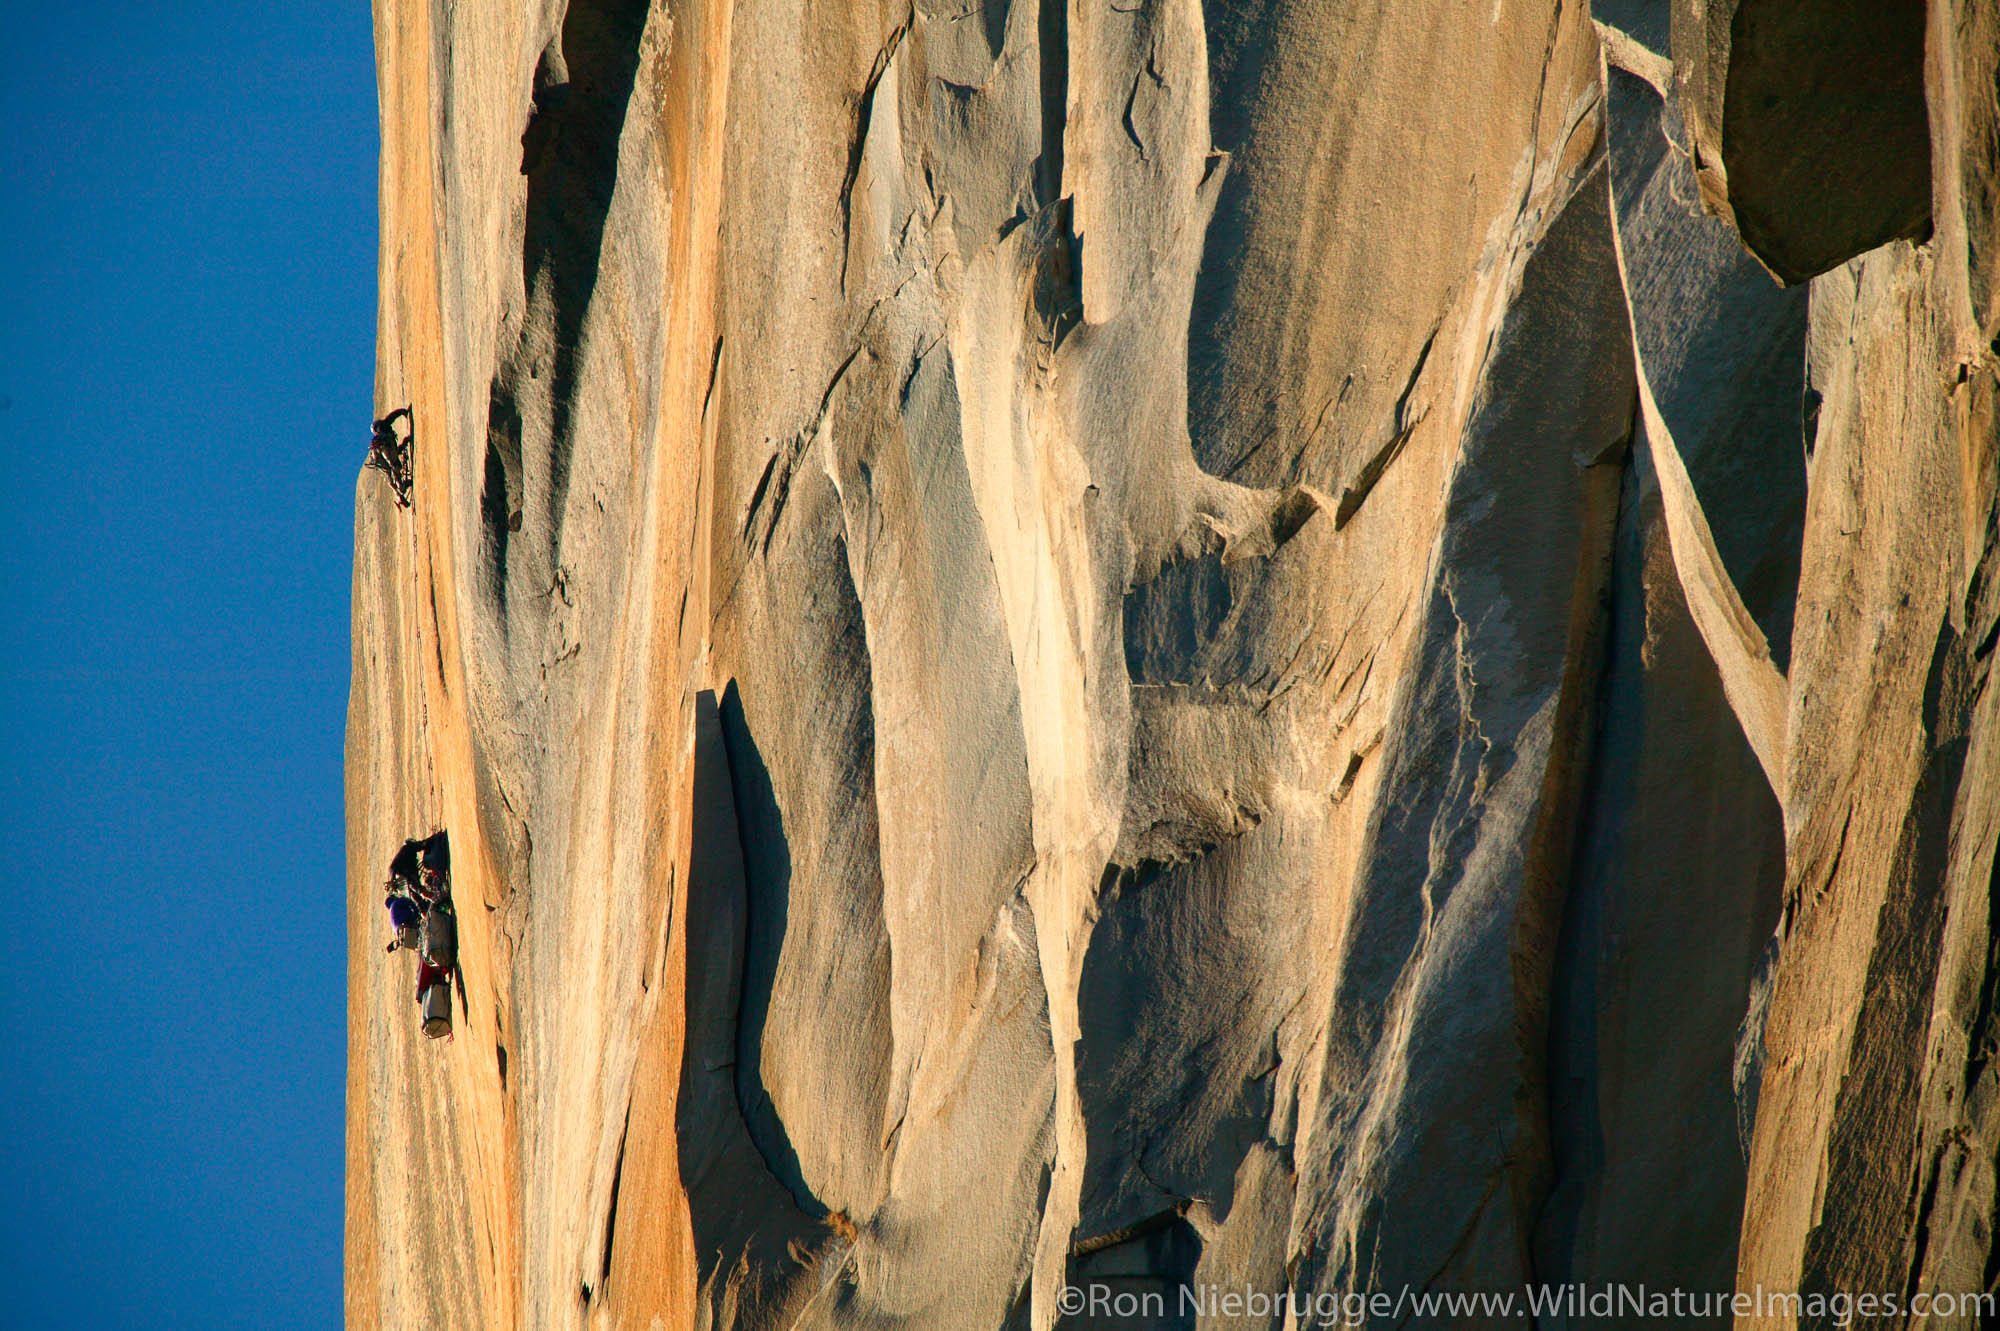 Climbers high upon El Capitan, Yosemite National Park, California.